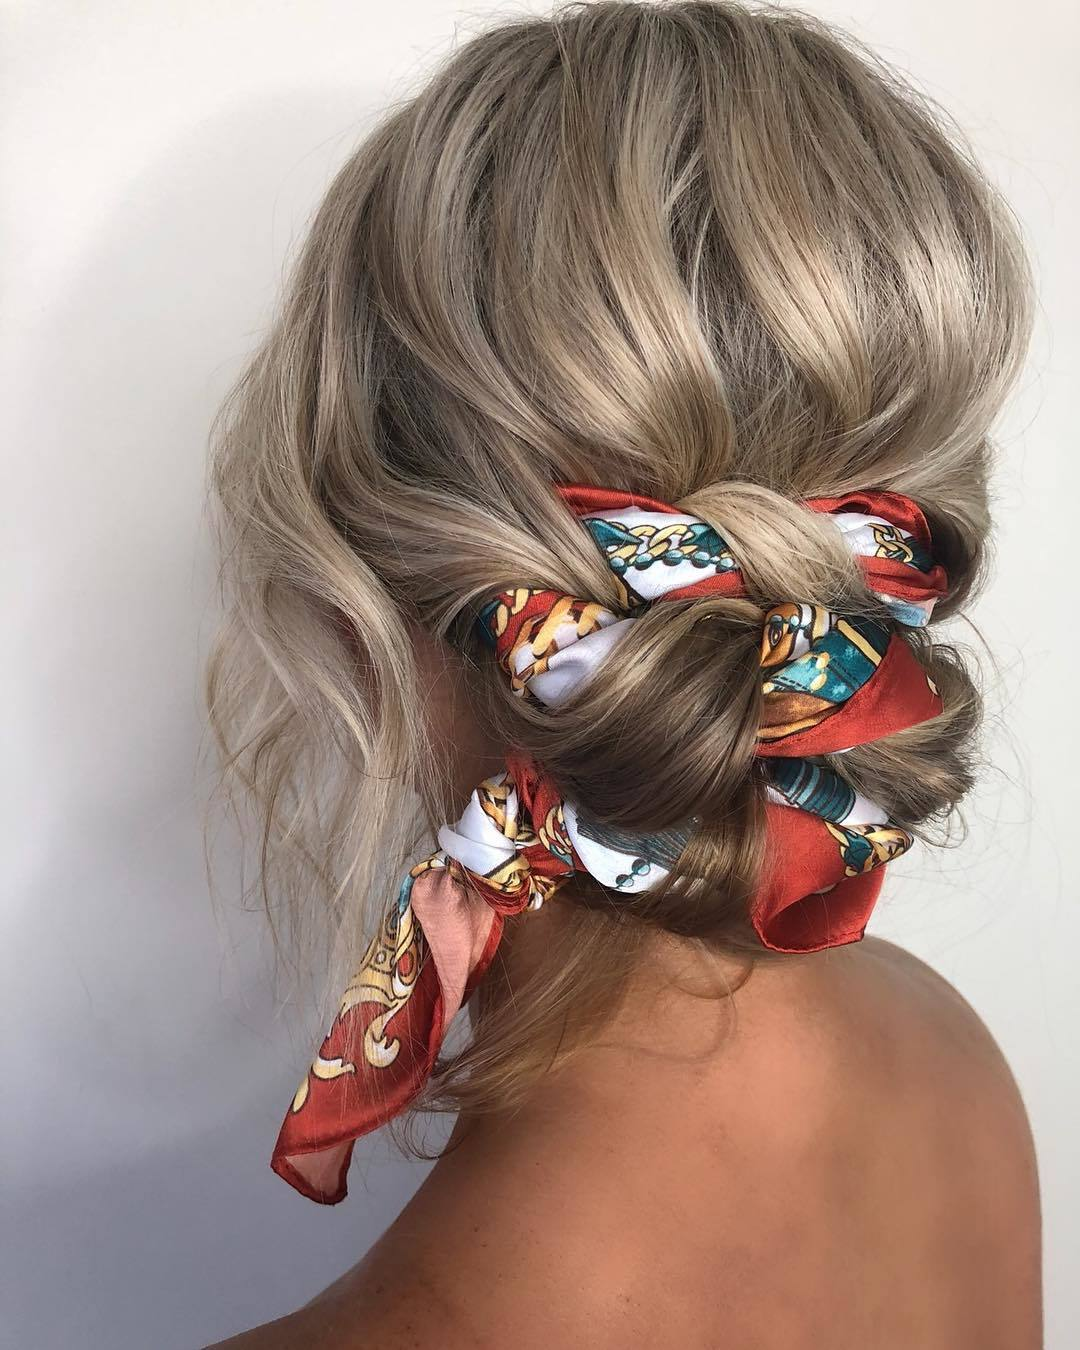 11 Hot Bandana Hairstyles and Headband Looks to Copy (11 Update)